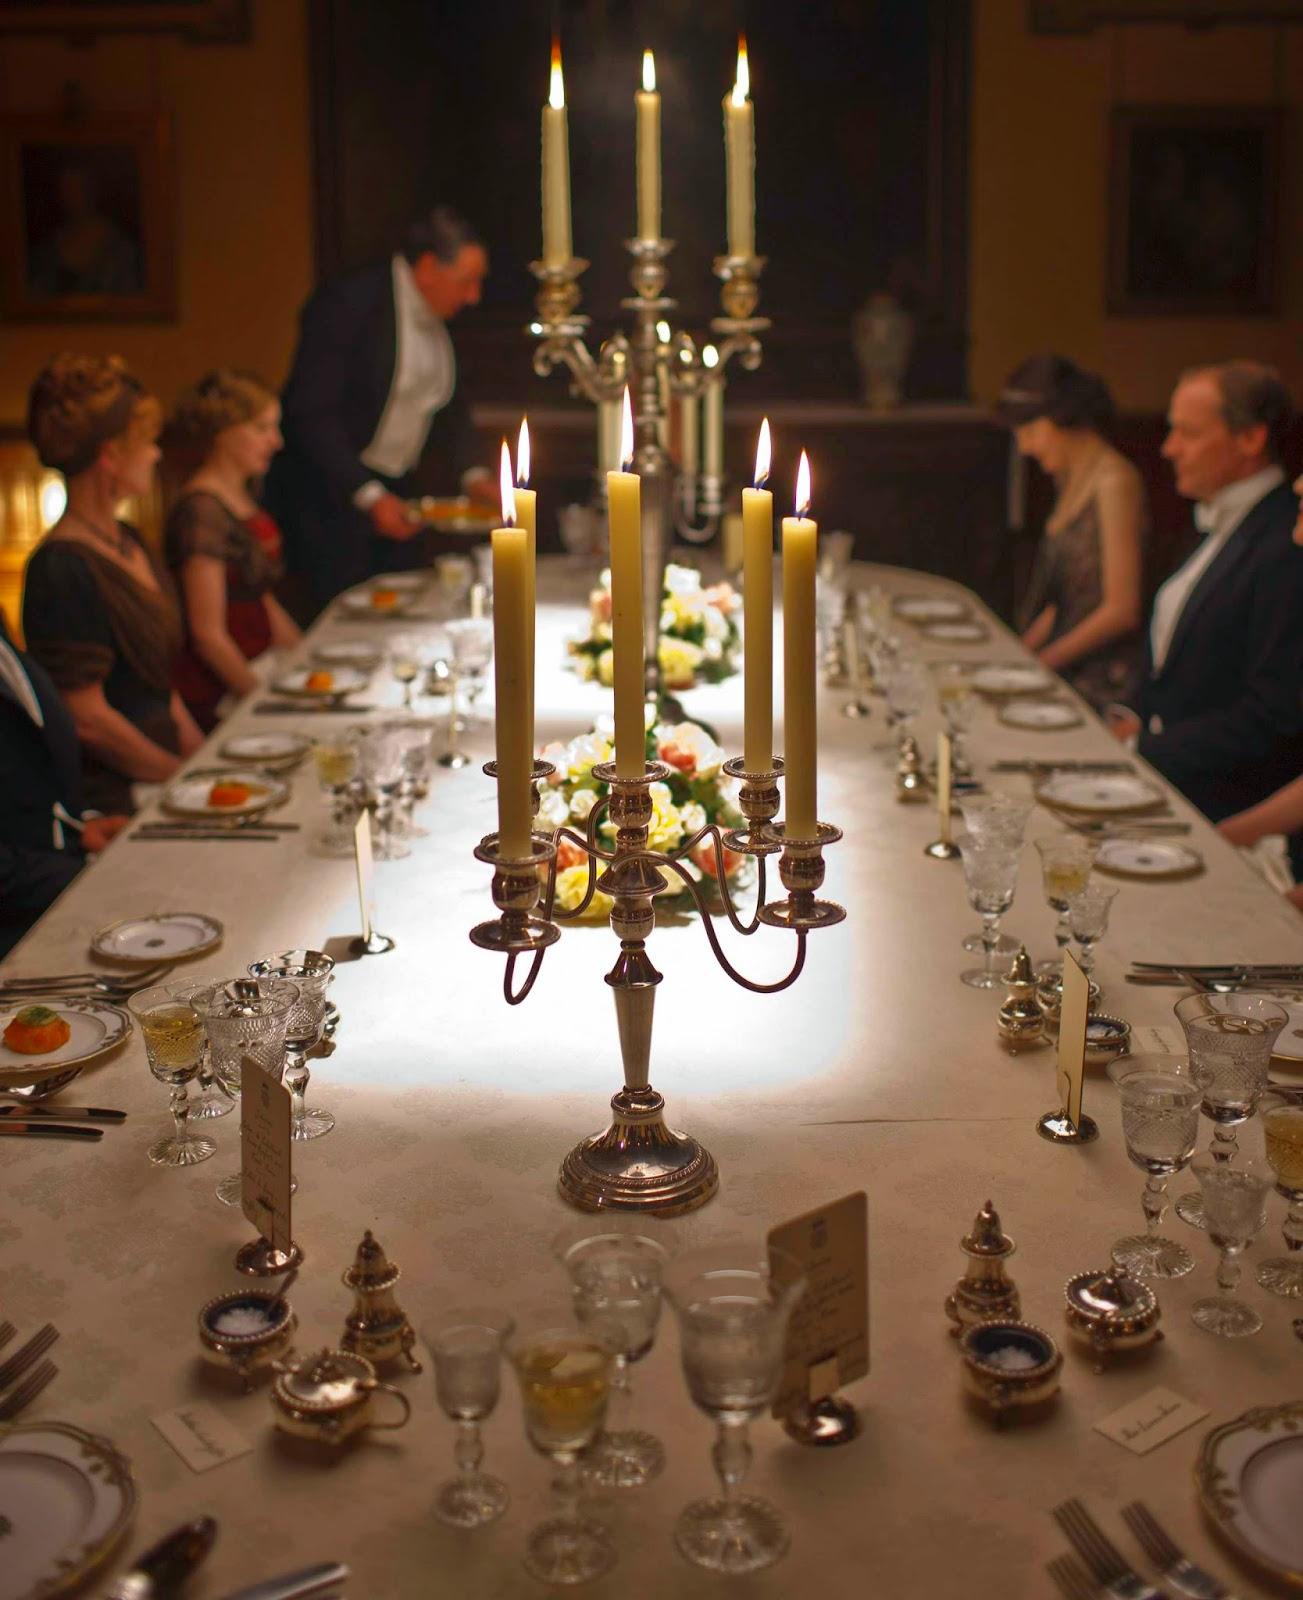 table is set at downton abbey with full service layed out, lit candles and guests dressed up.